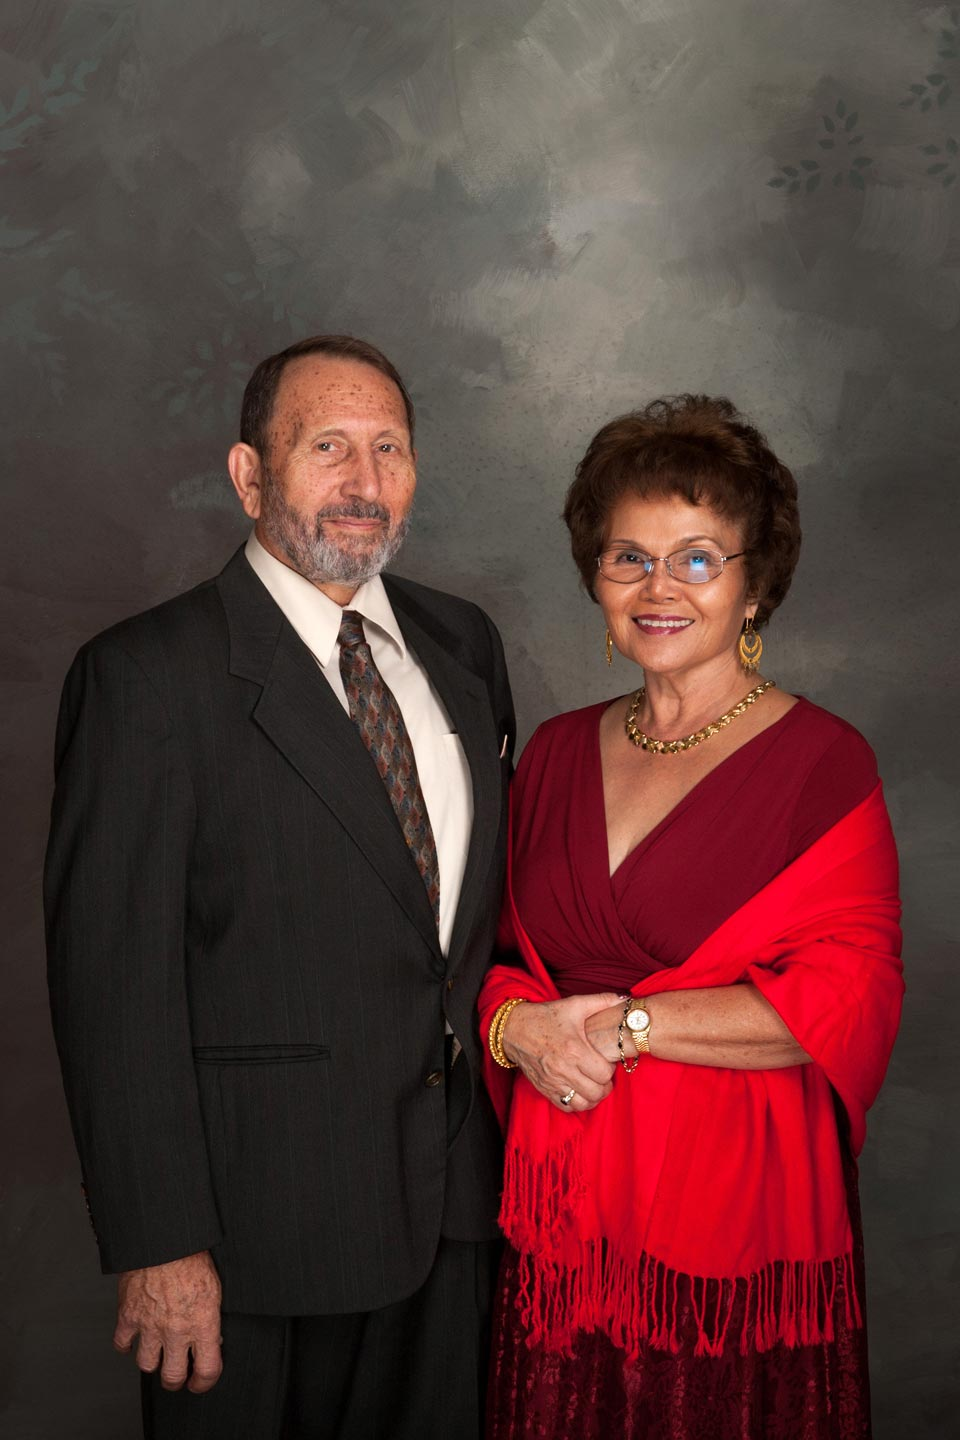 Lawrence and Penny Olsen